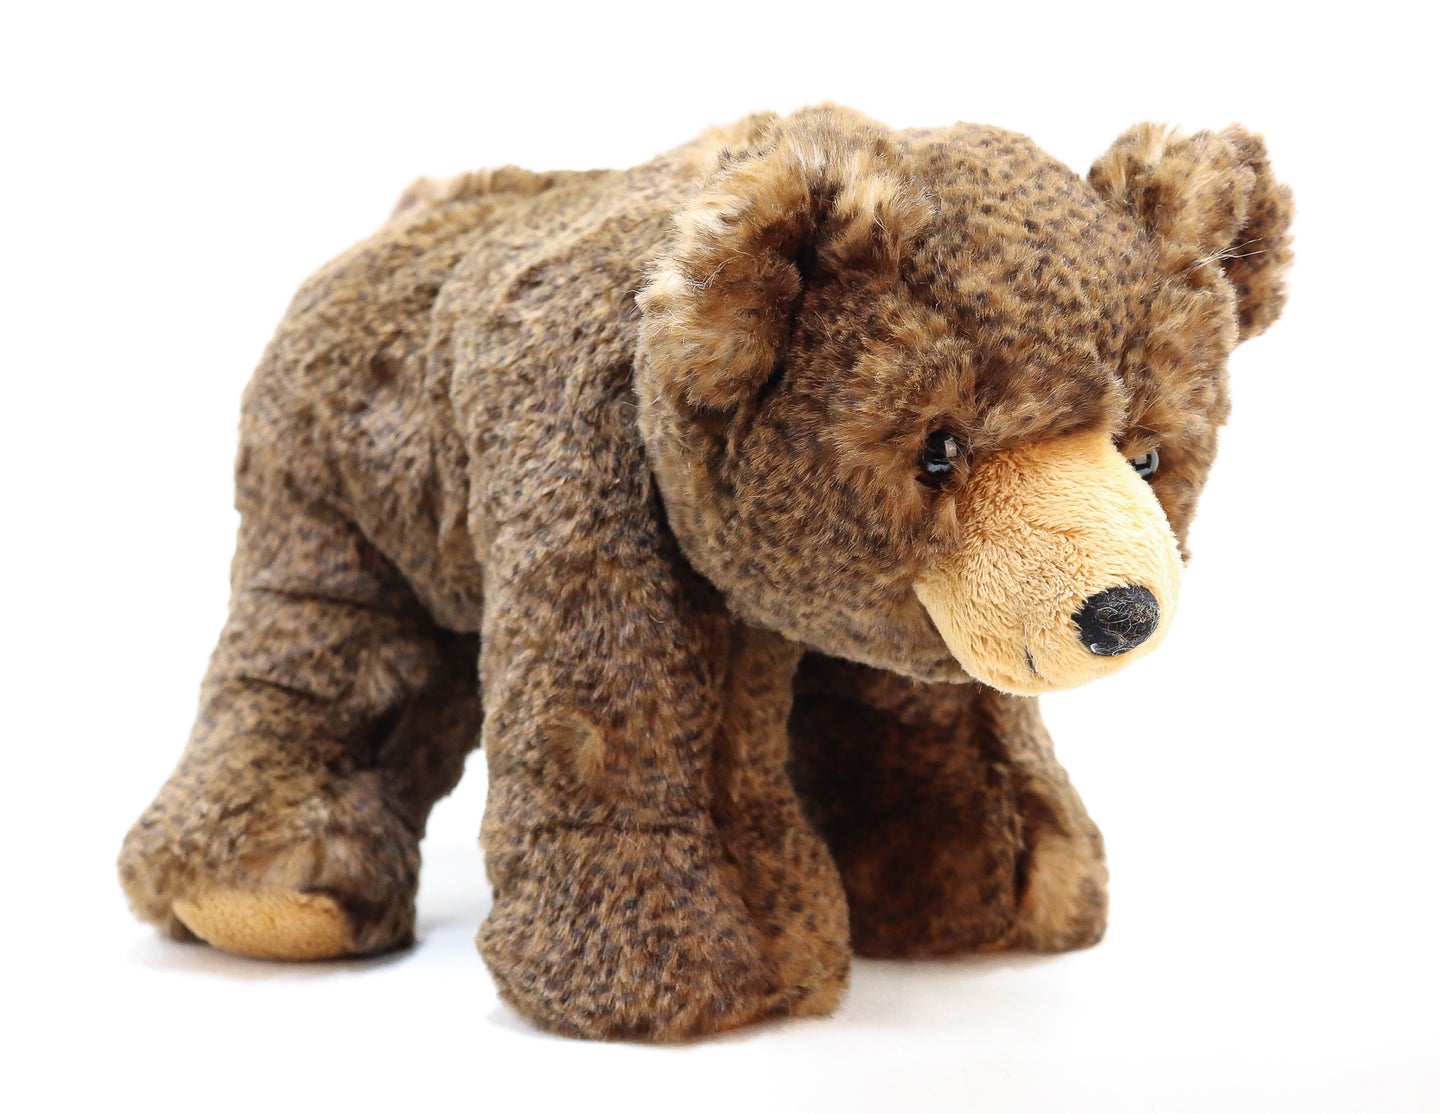 SITTING AND STANDING GRIZZLY BEAR CUB 10-INCH